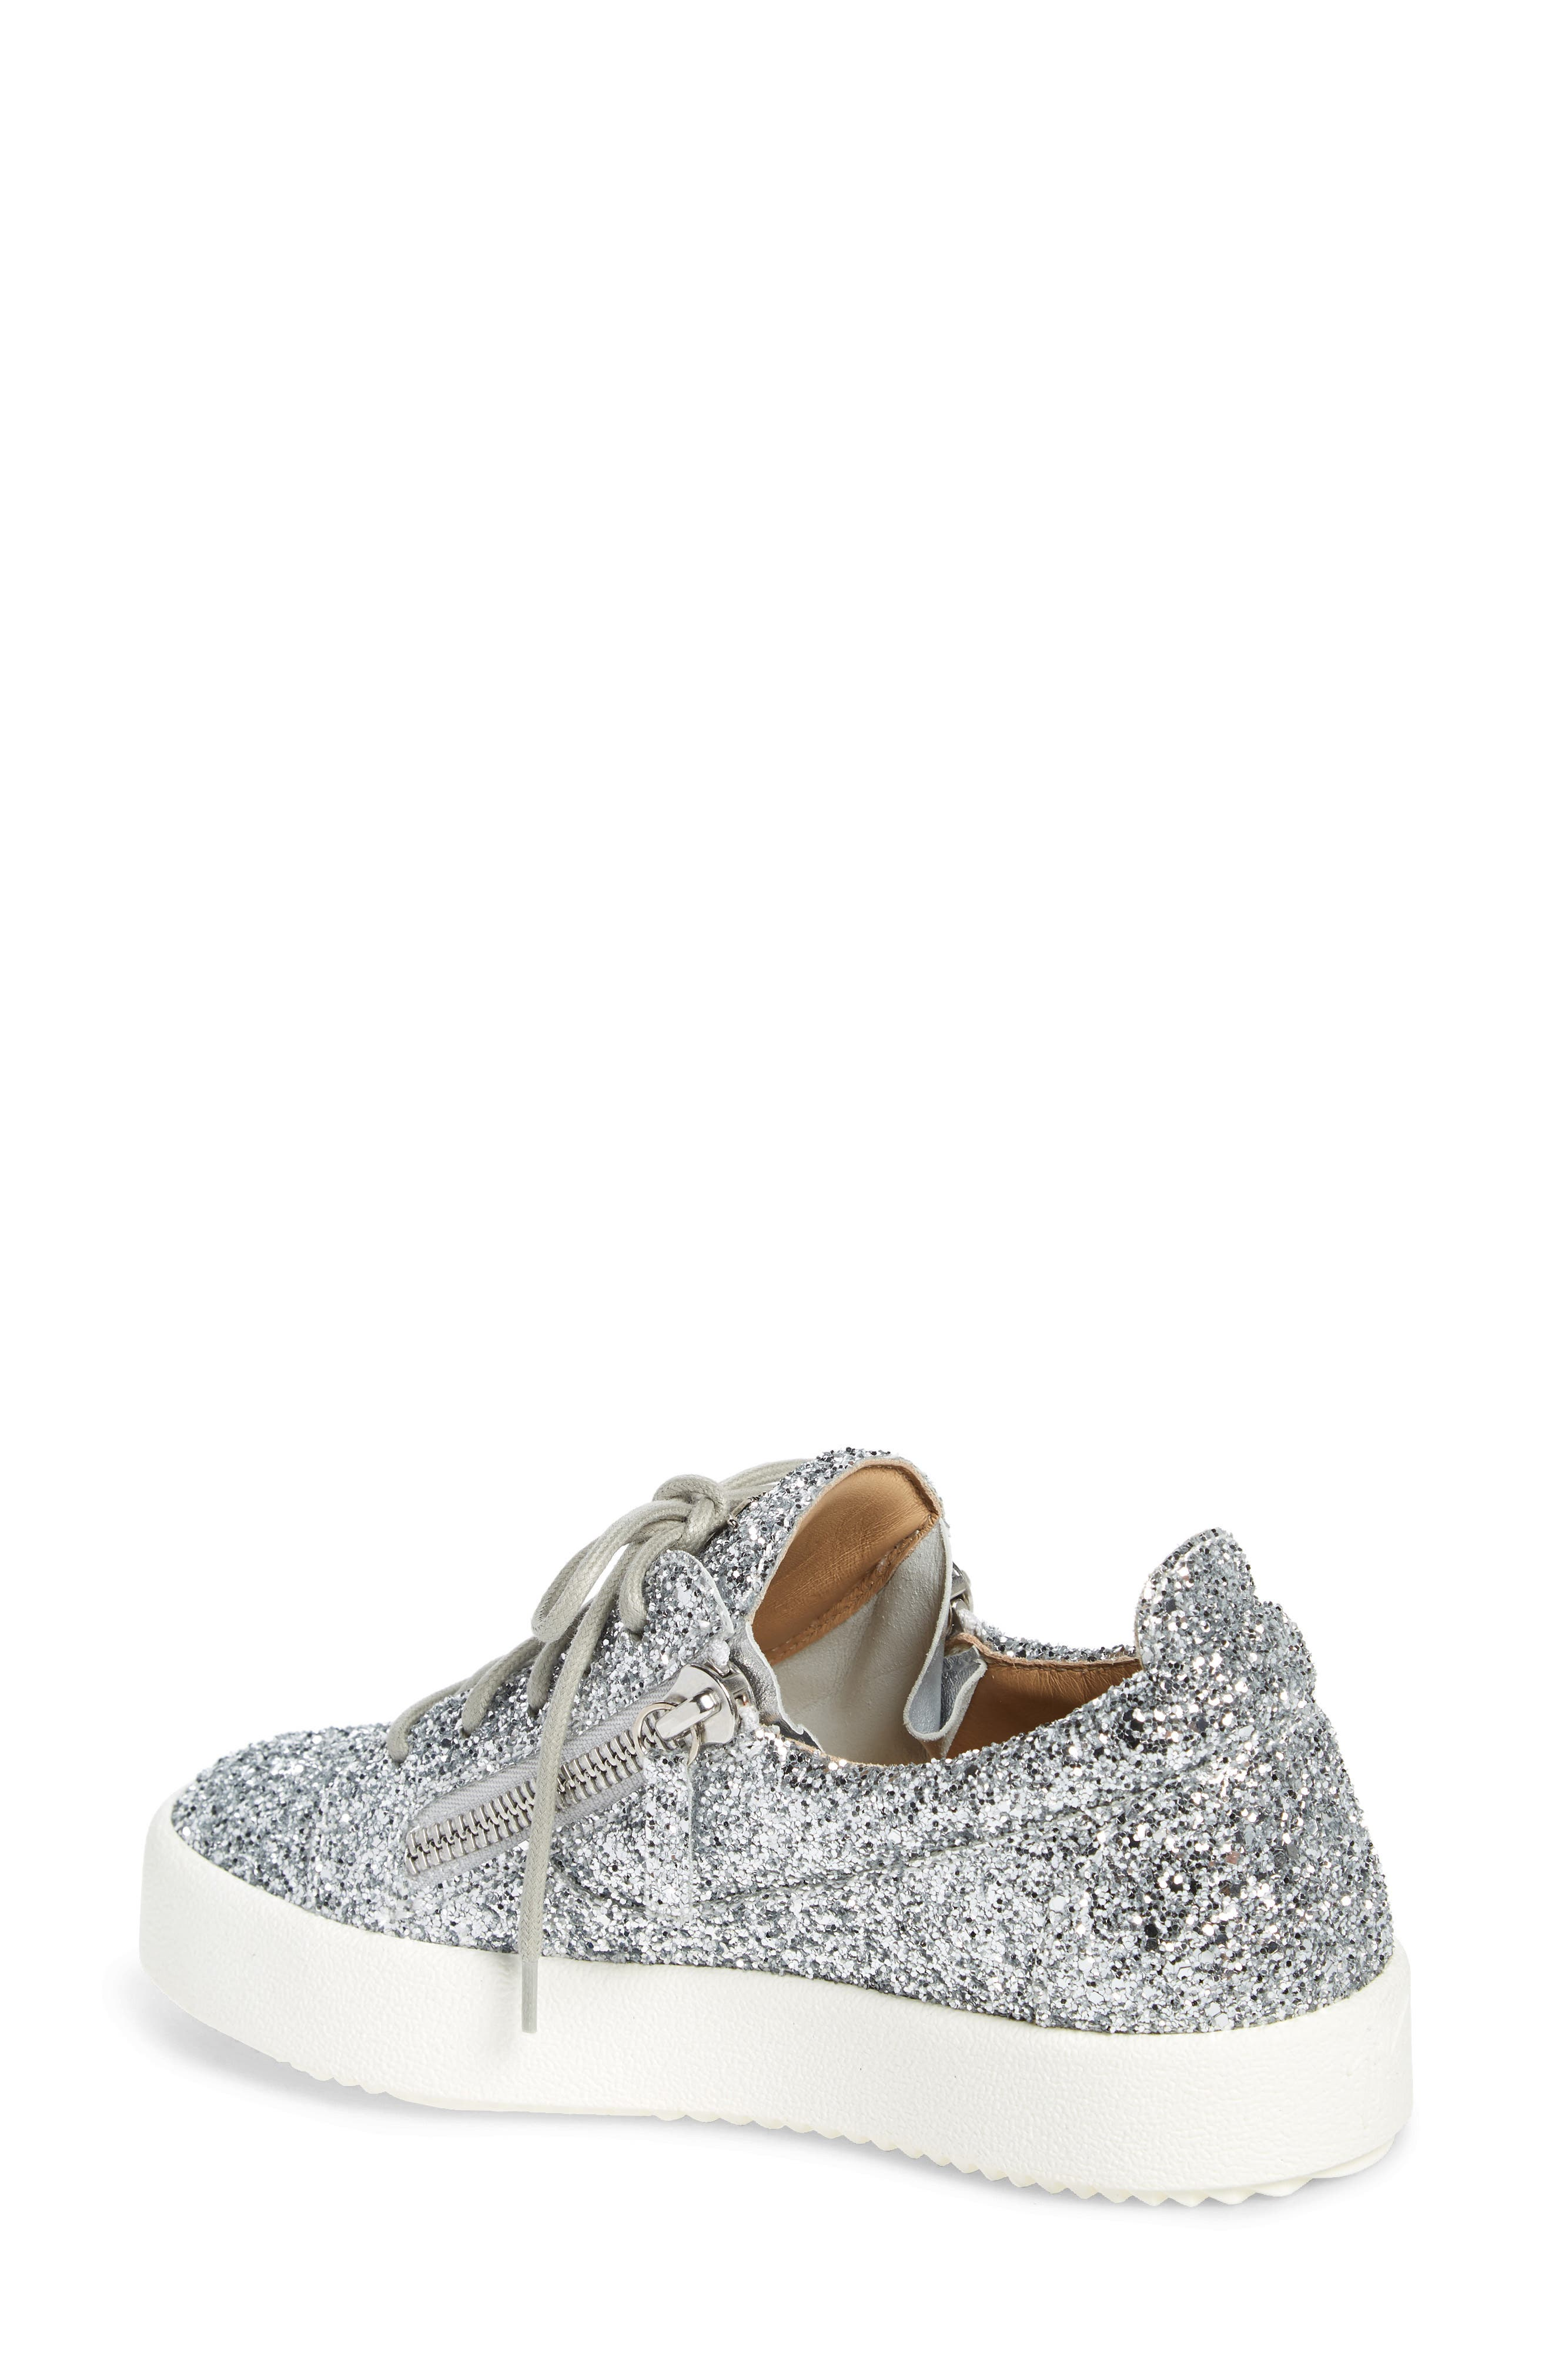 May London Low Top Sneaker,                             Alternate thumbnail 2, color,                             SILVER GLITTER